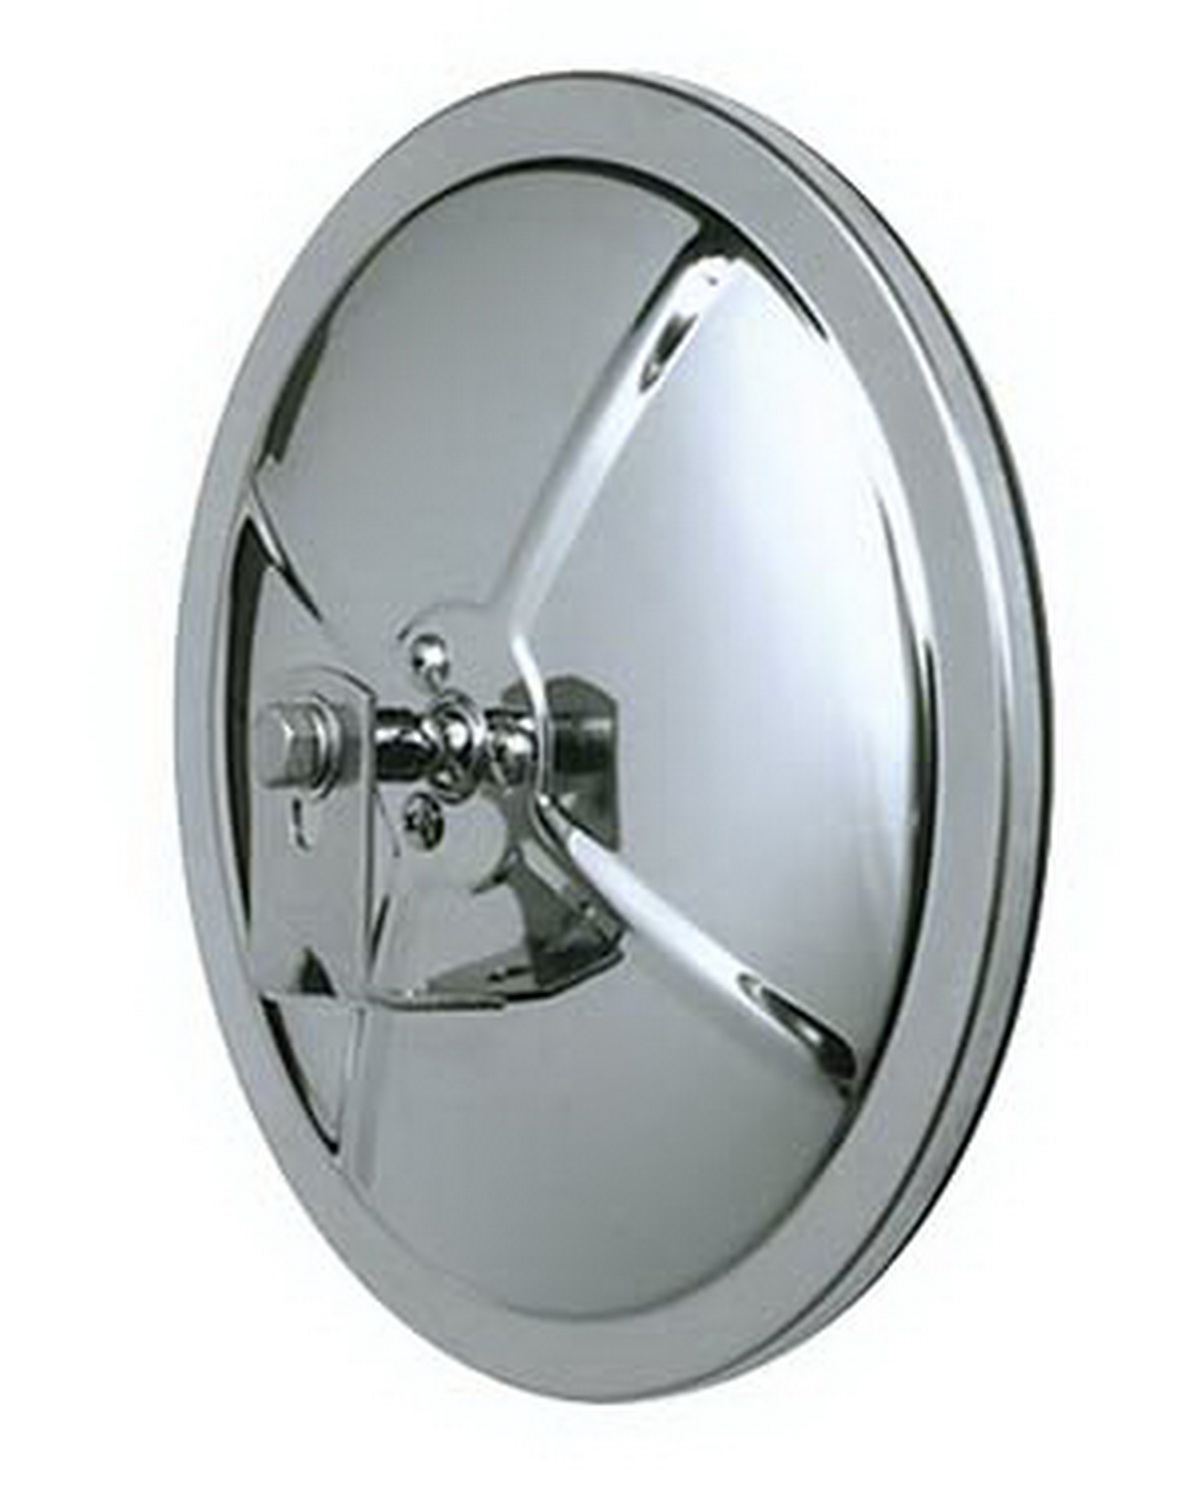 Cipa USA Door Mirror (48602)